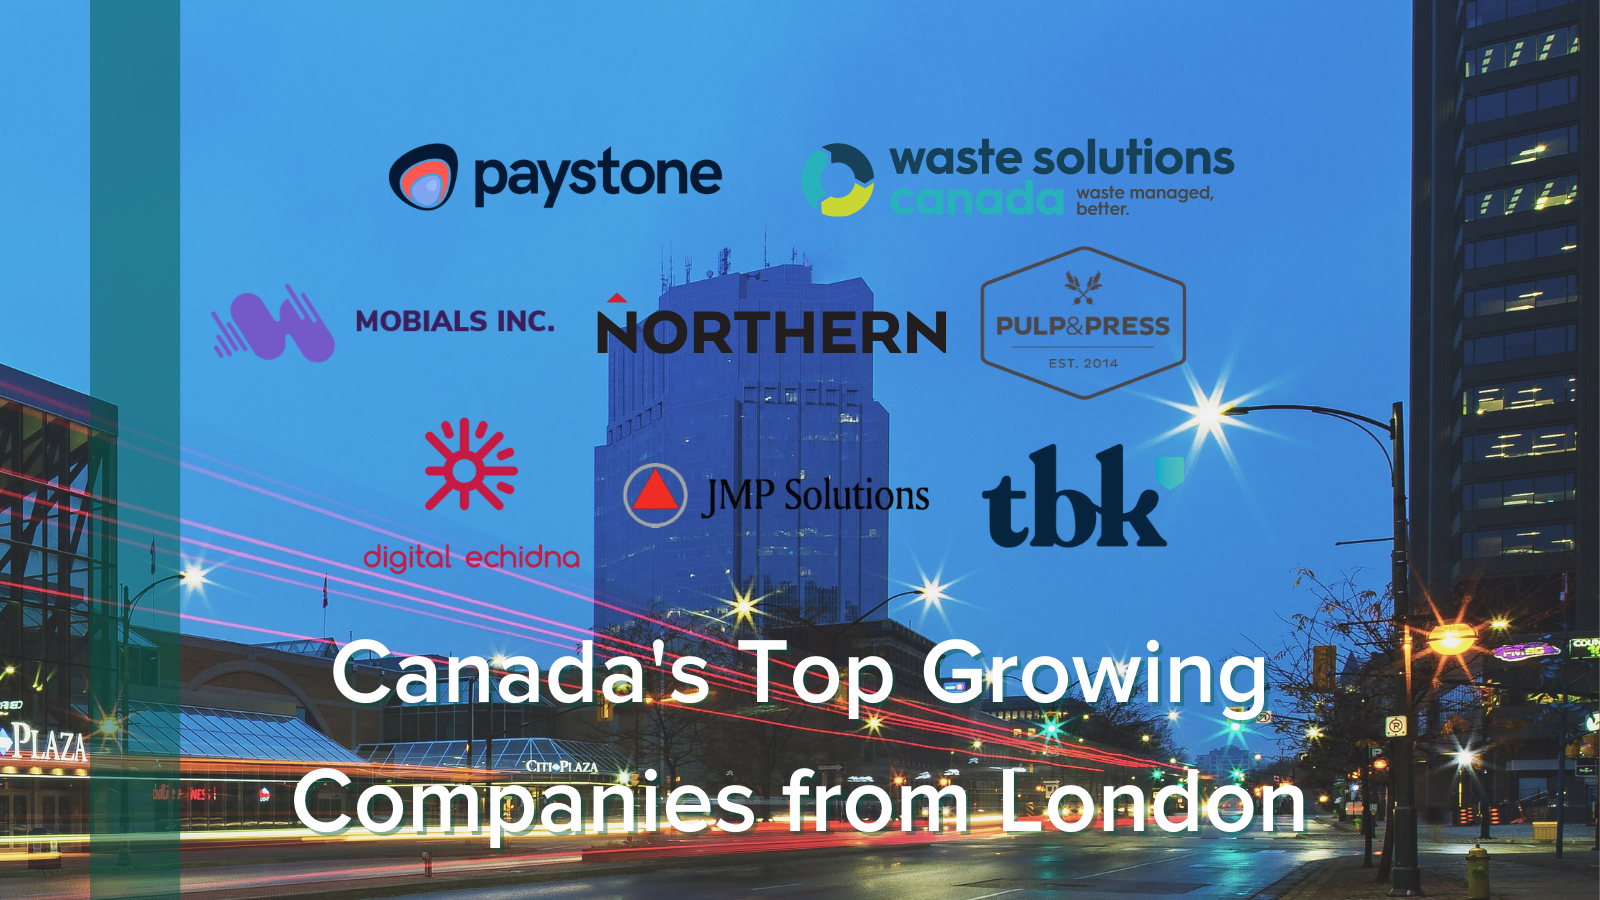 Logos with image of downtown London in background